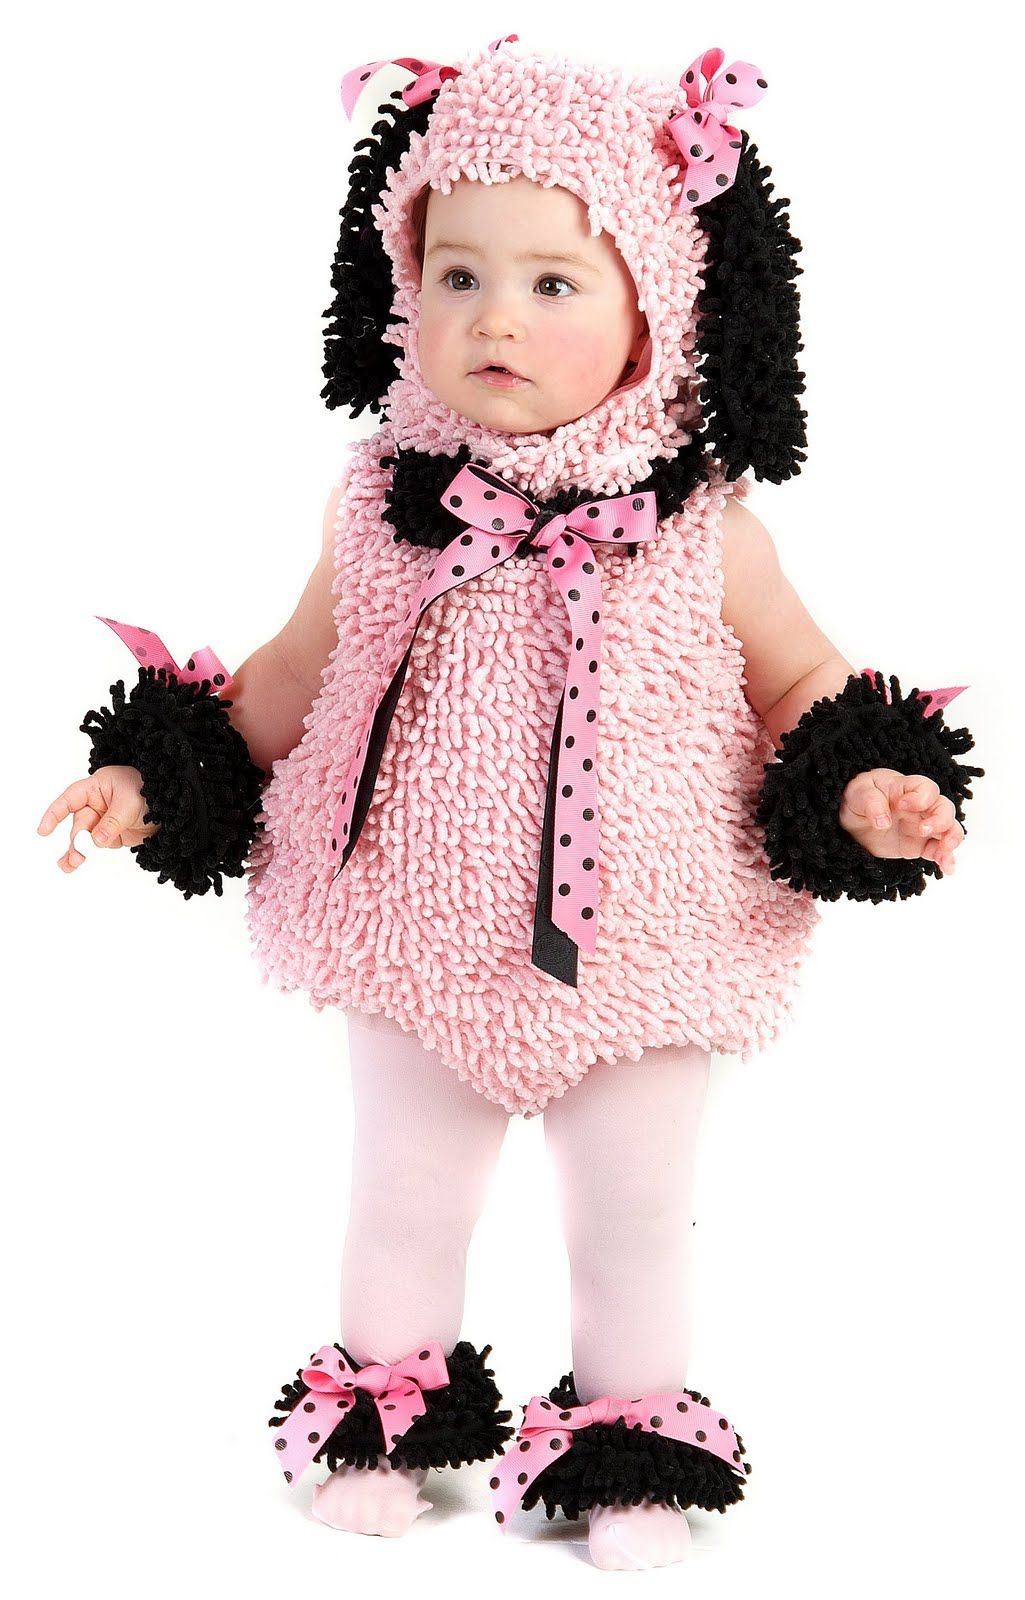 Costumes For Cheap: Pink Poodle Toddler Infant Costume is The ...